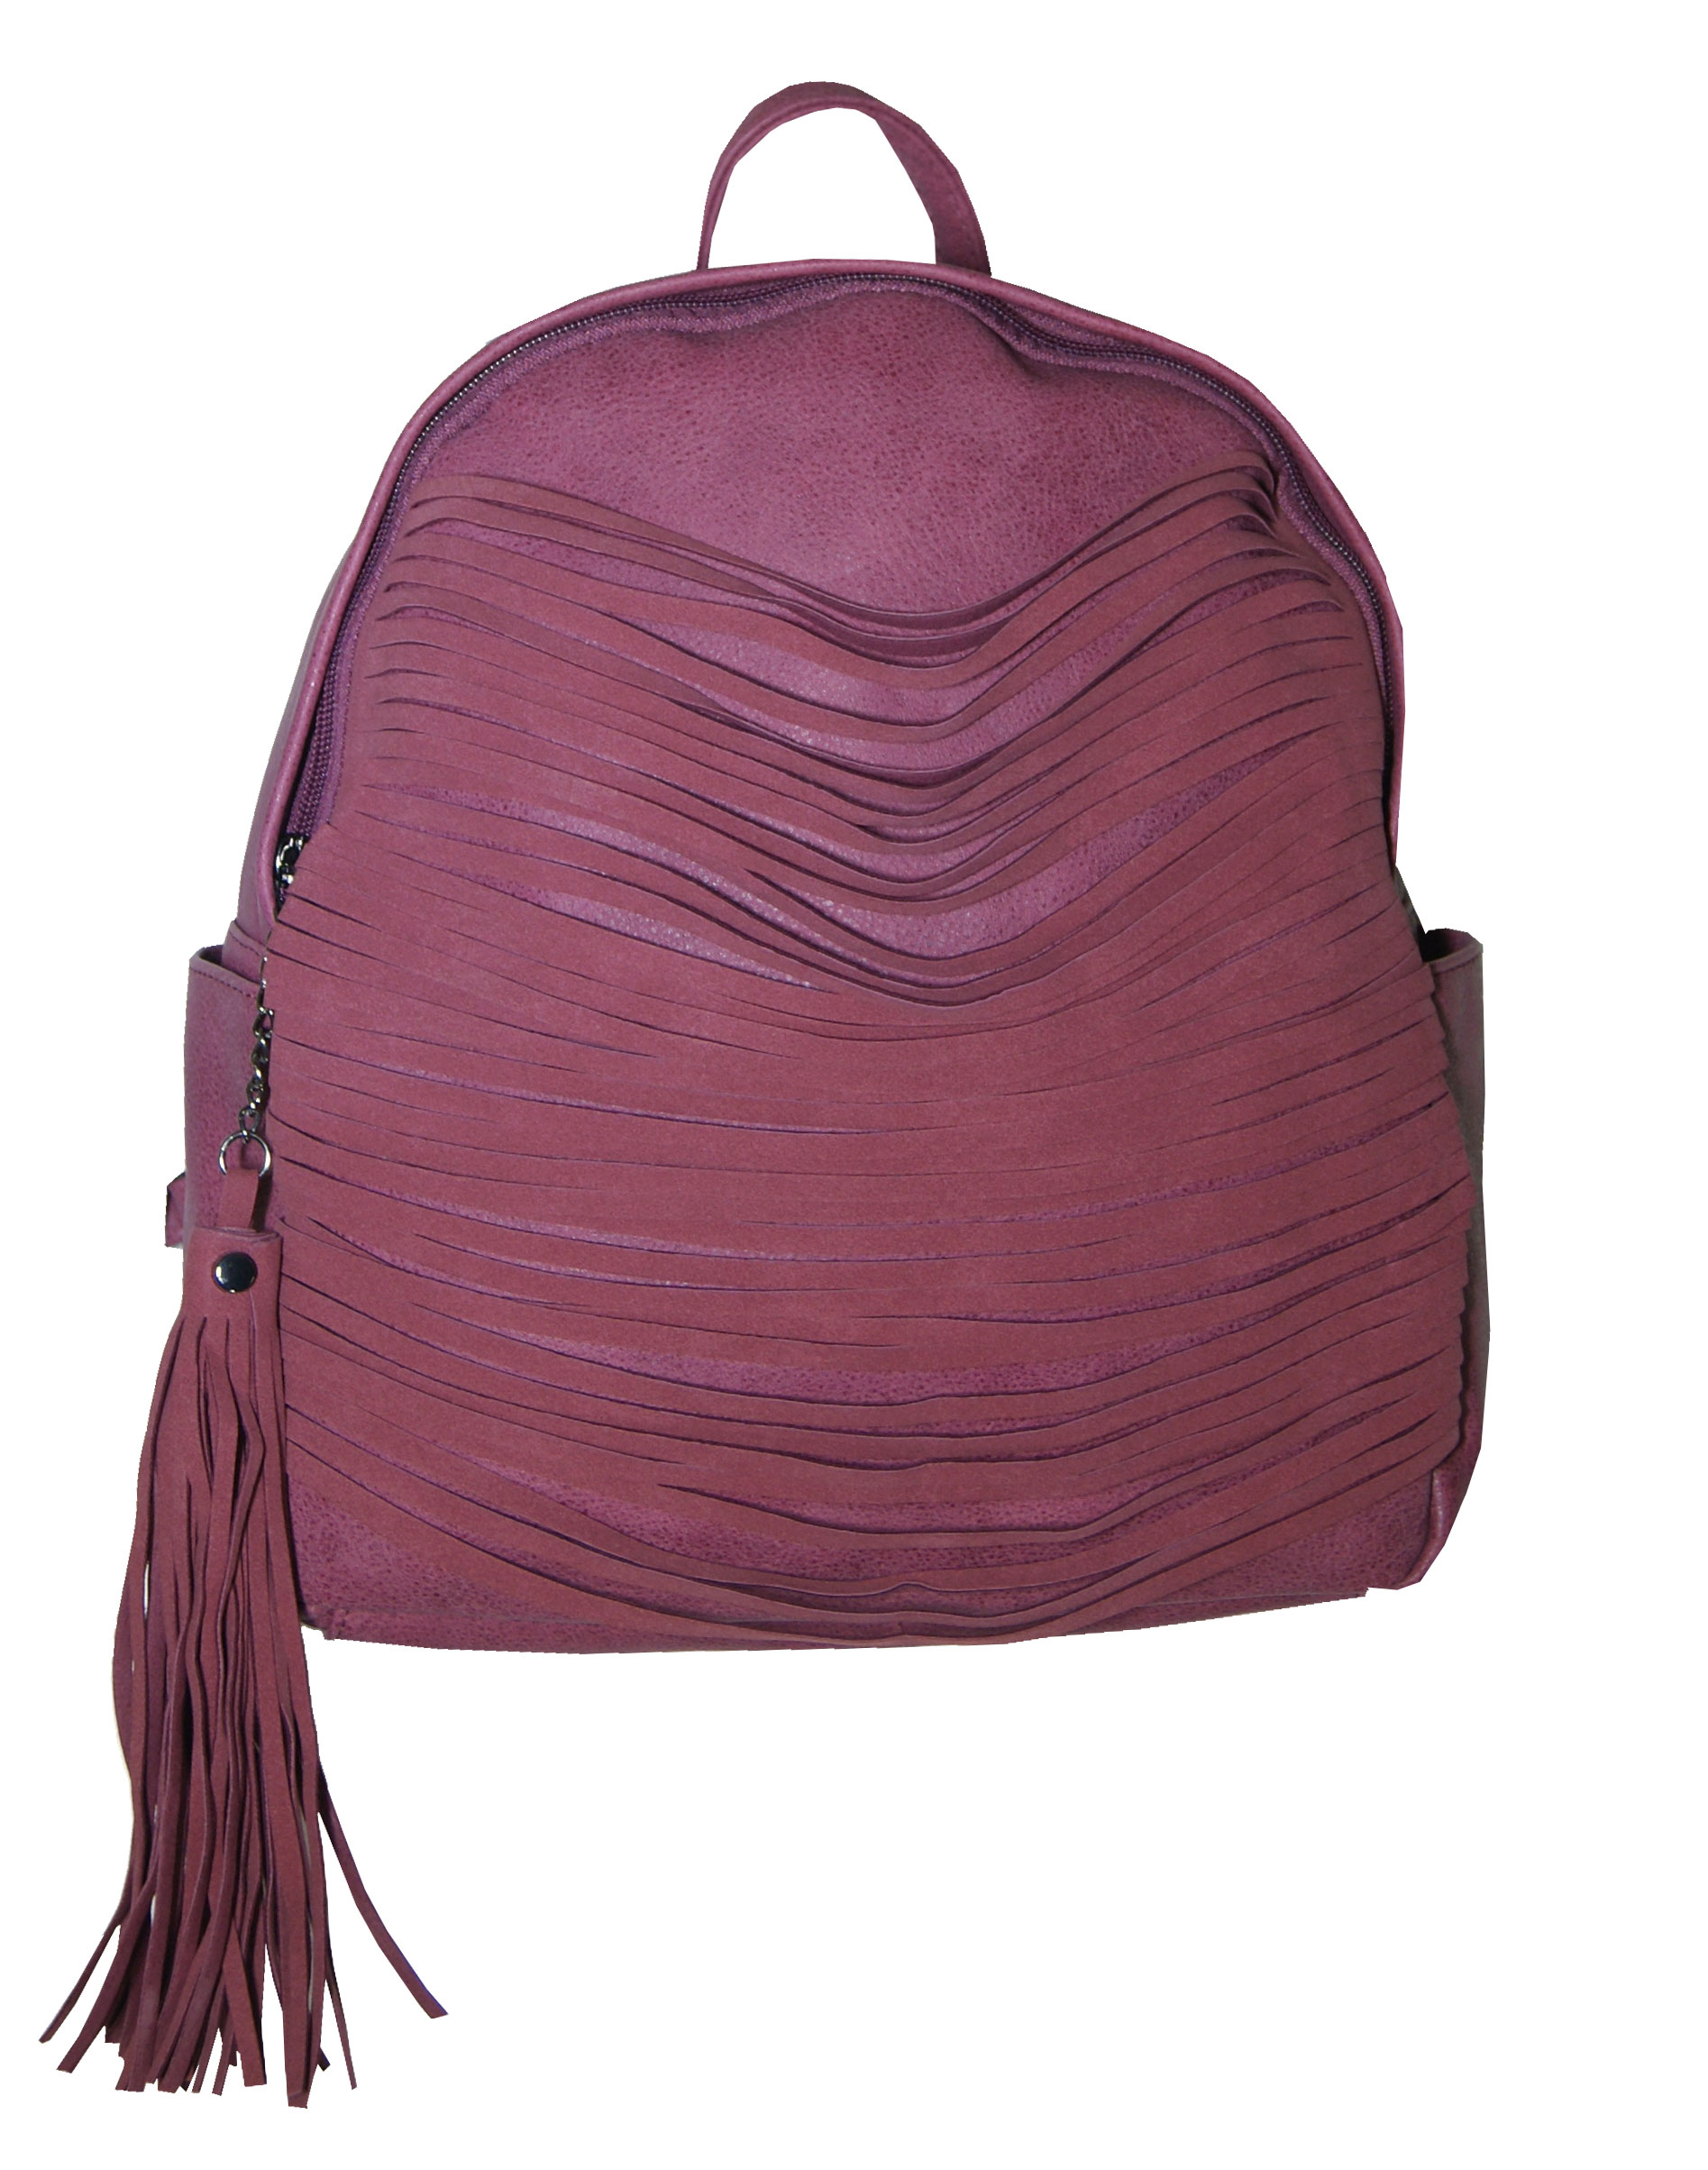 Backpack No 1613 - Μπορντό (Lucky Star κωδ.: 1613)